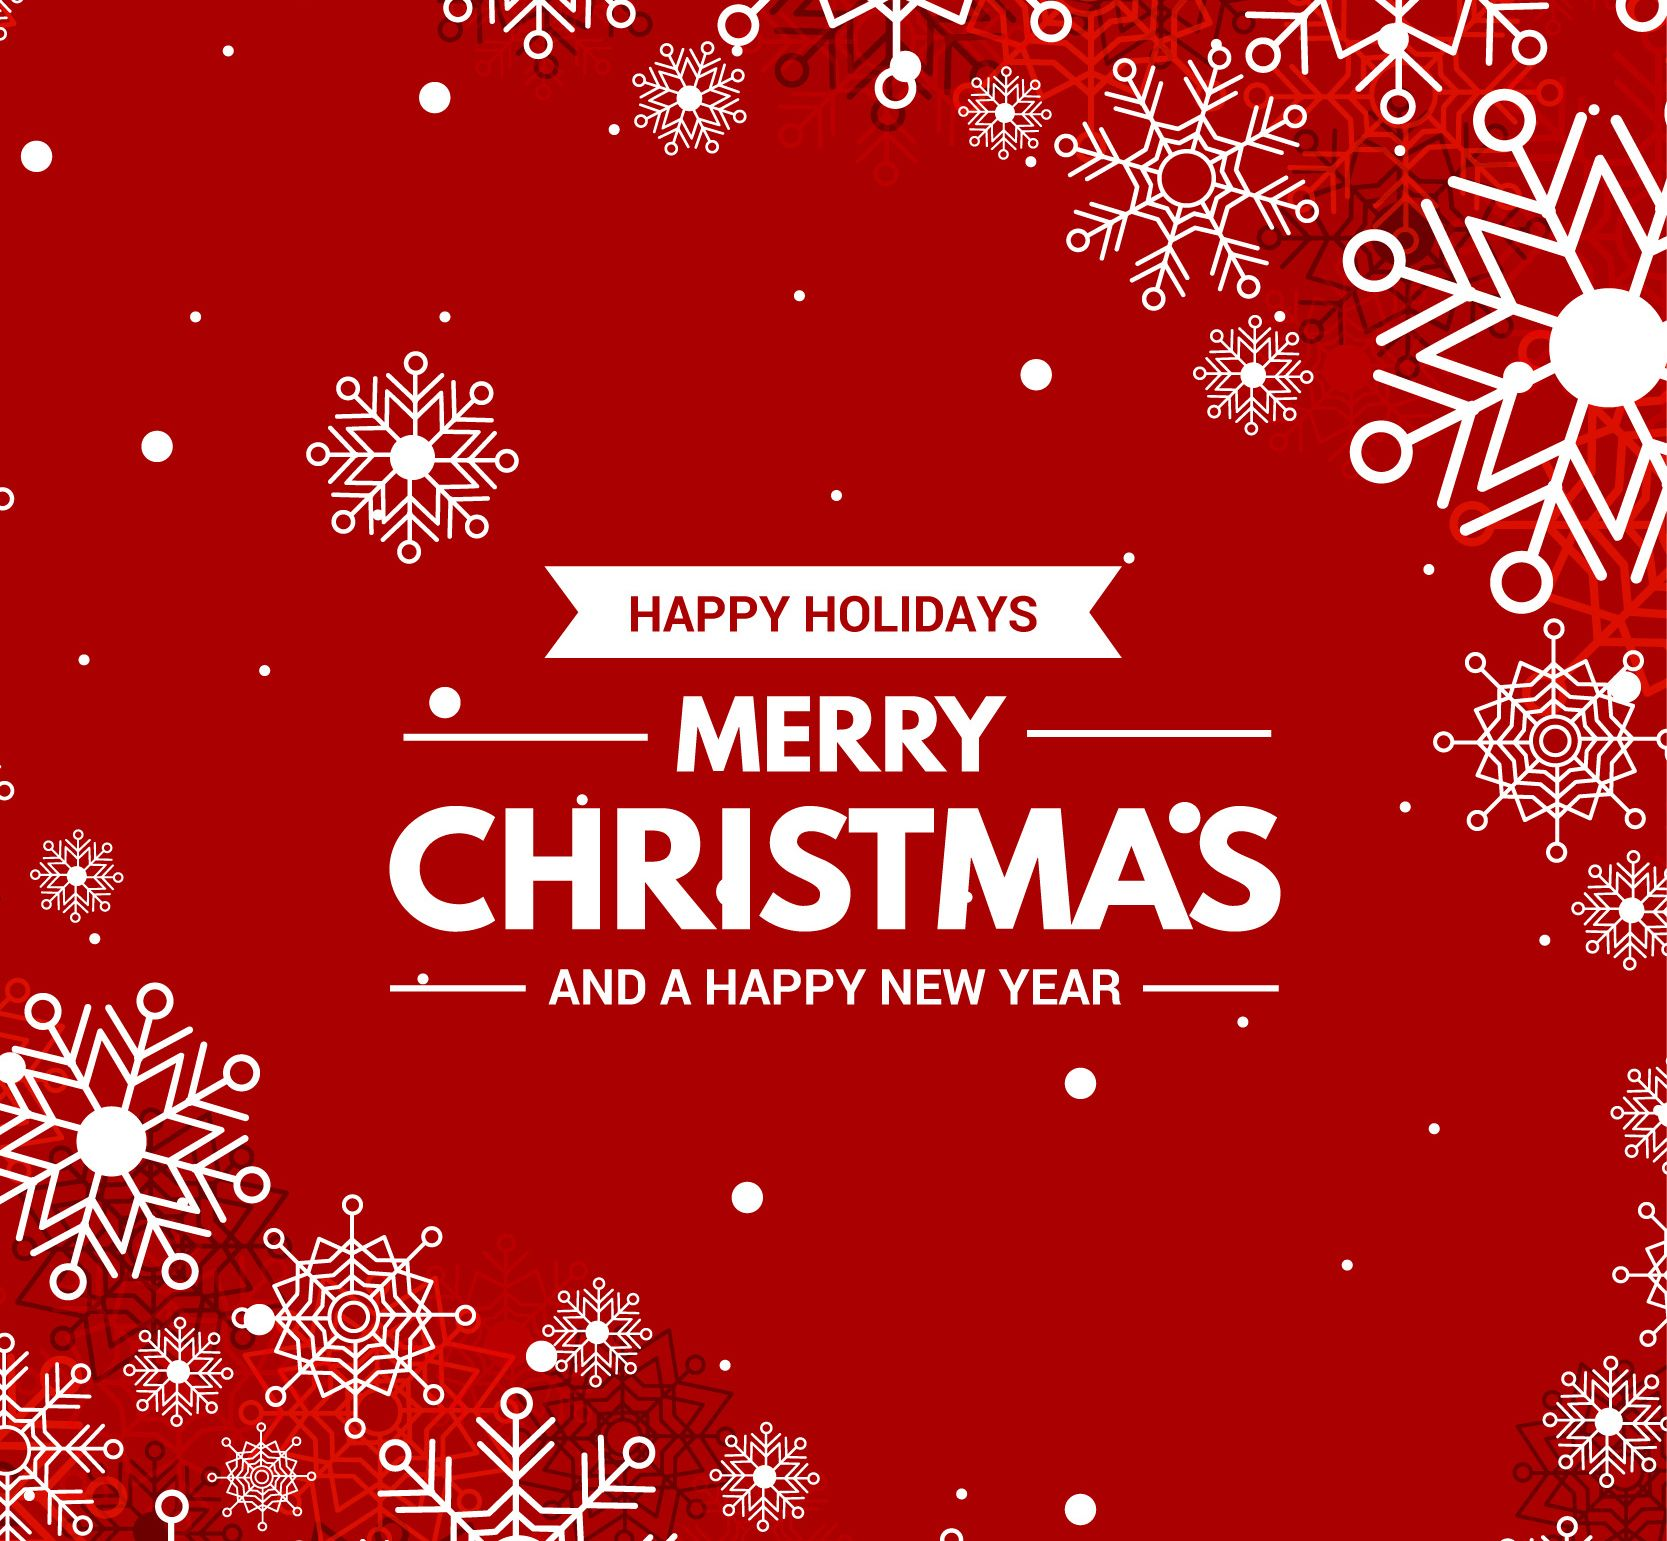 free christmas images free merry christmas images free christmas pictures free merry christmas pictures free christmas quotes free christmas messages - Merry Merry Merry Christmas